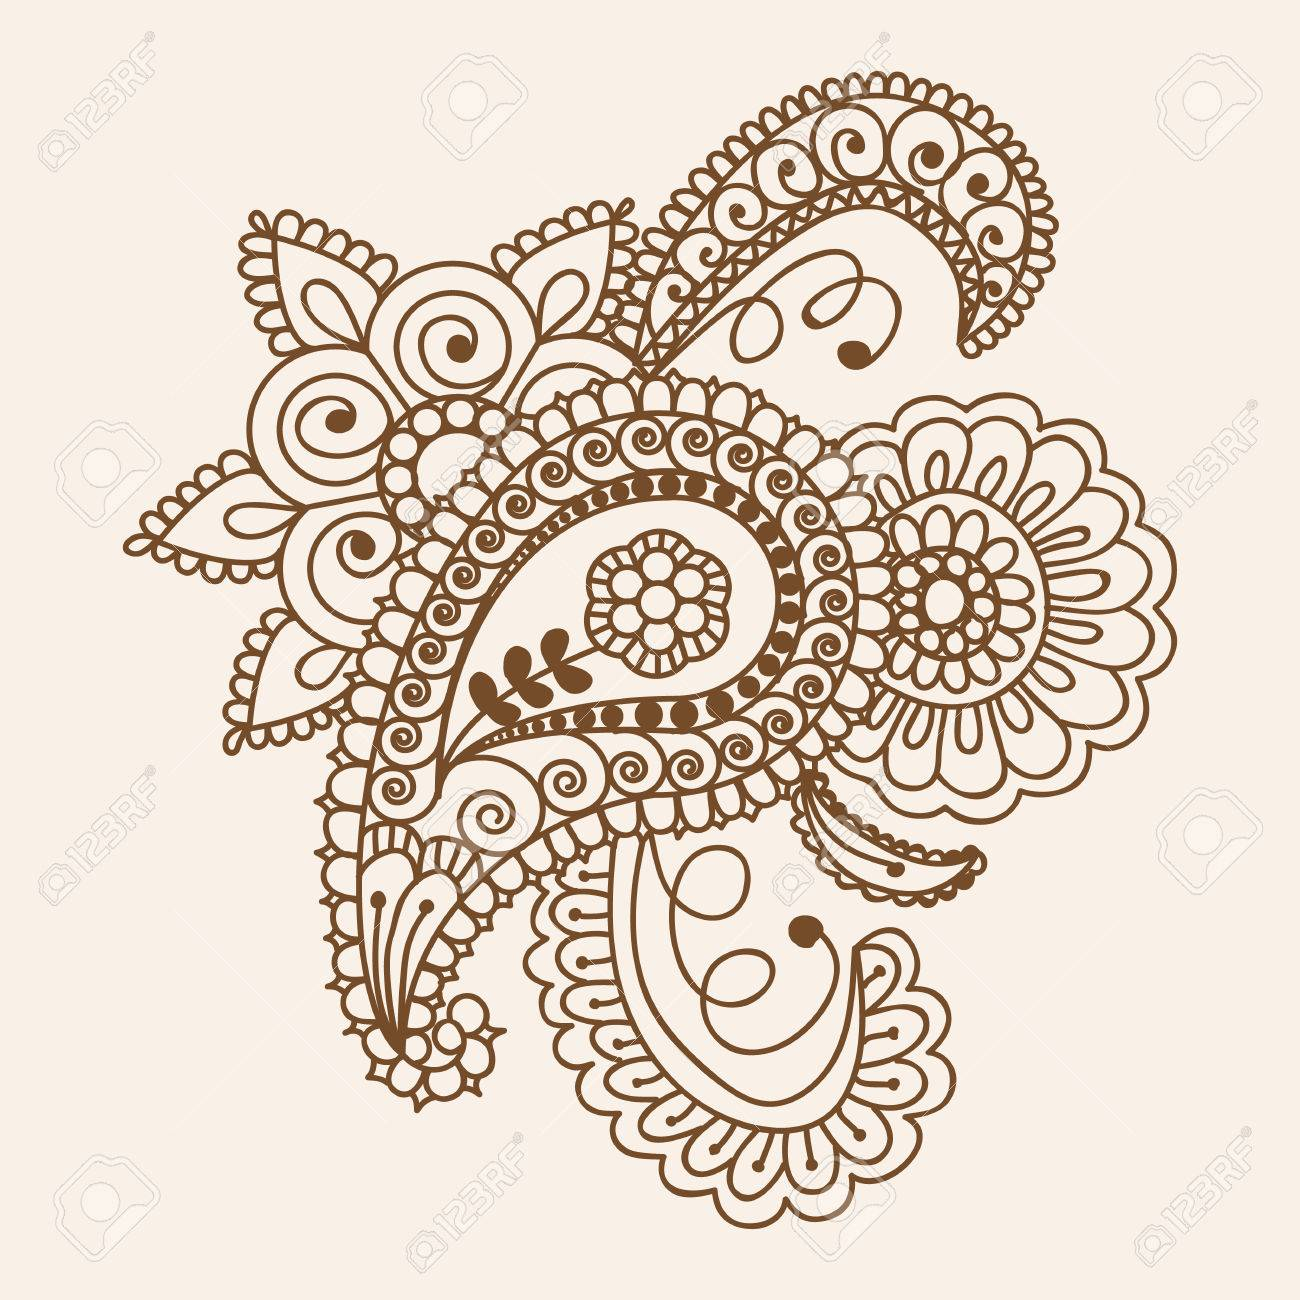 c73e21444 Henna Mehndi Doodles Abstract Floral Paisley Design Elements, Mandala, and  Page Corner Design Vector